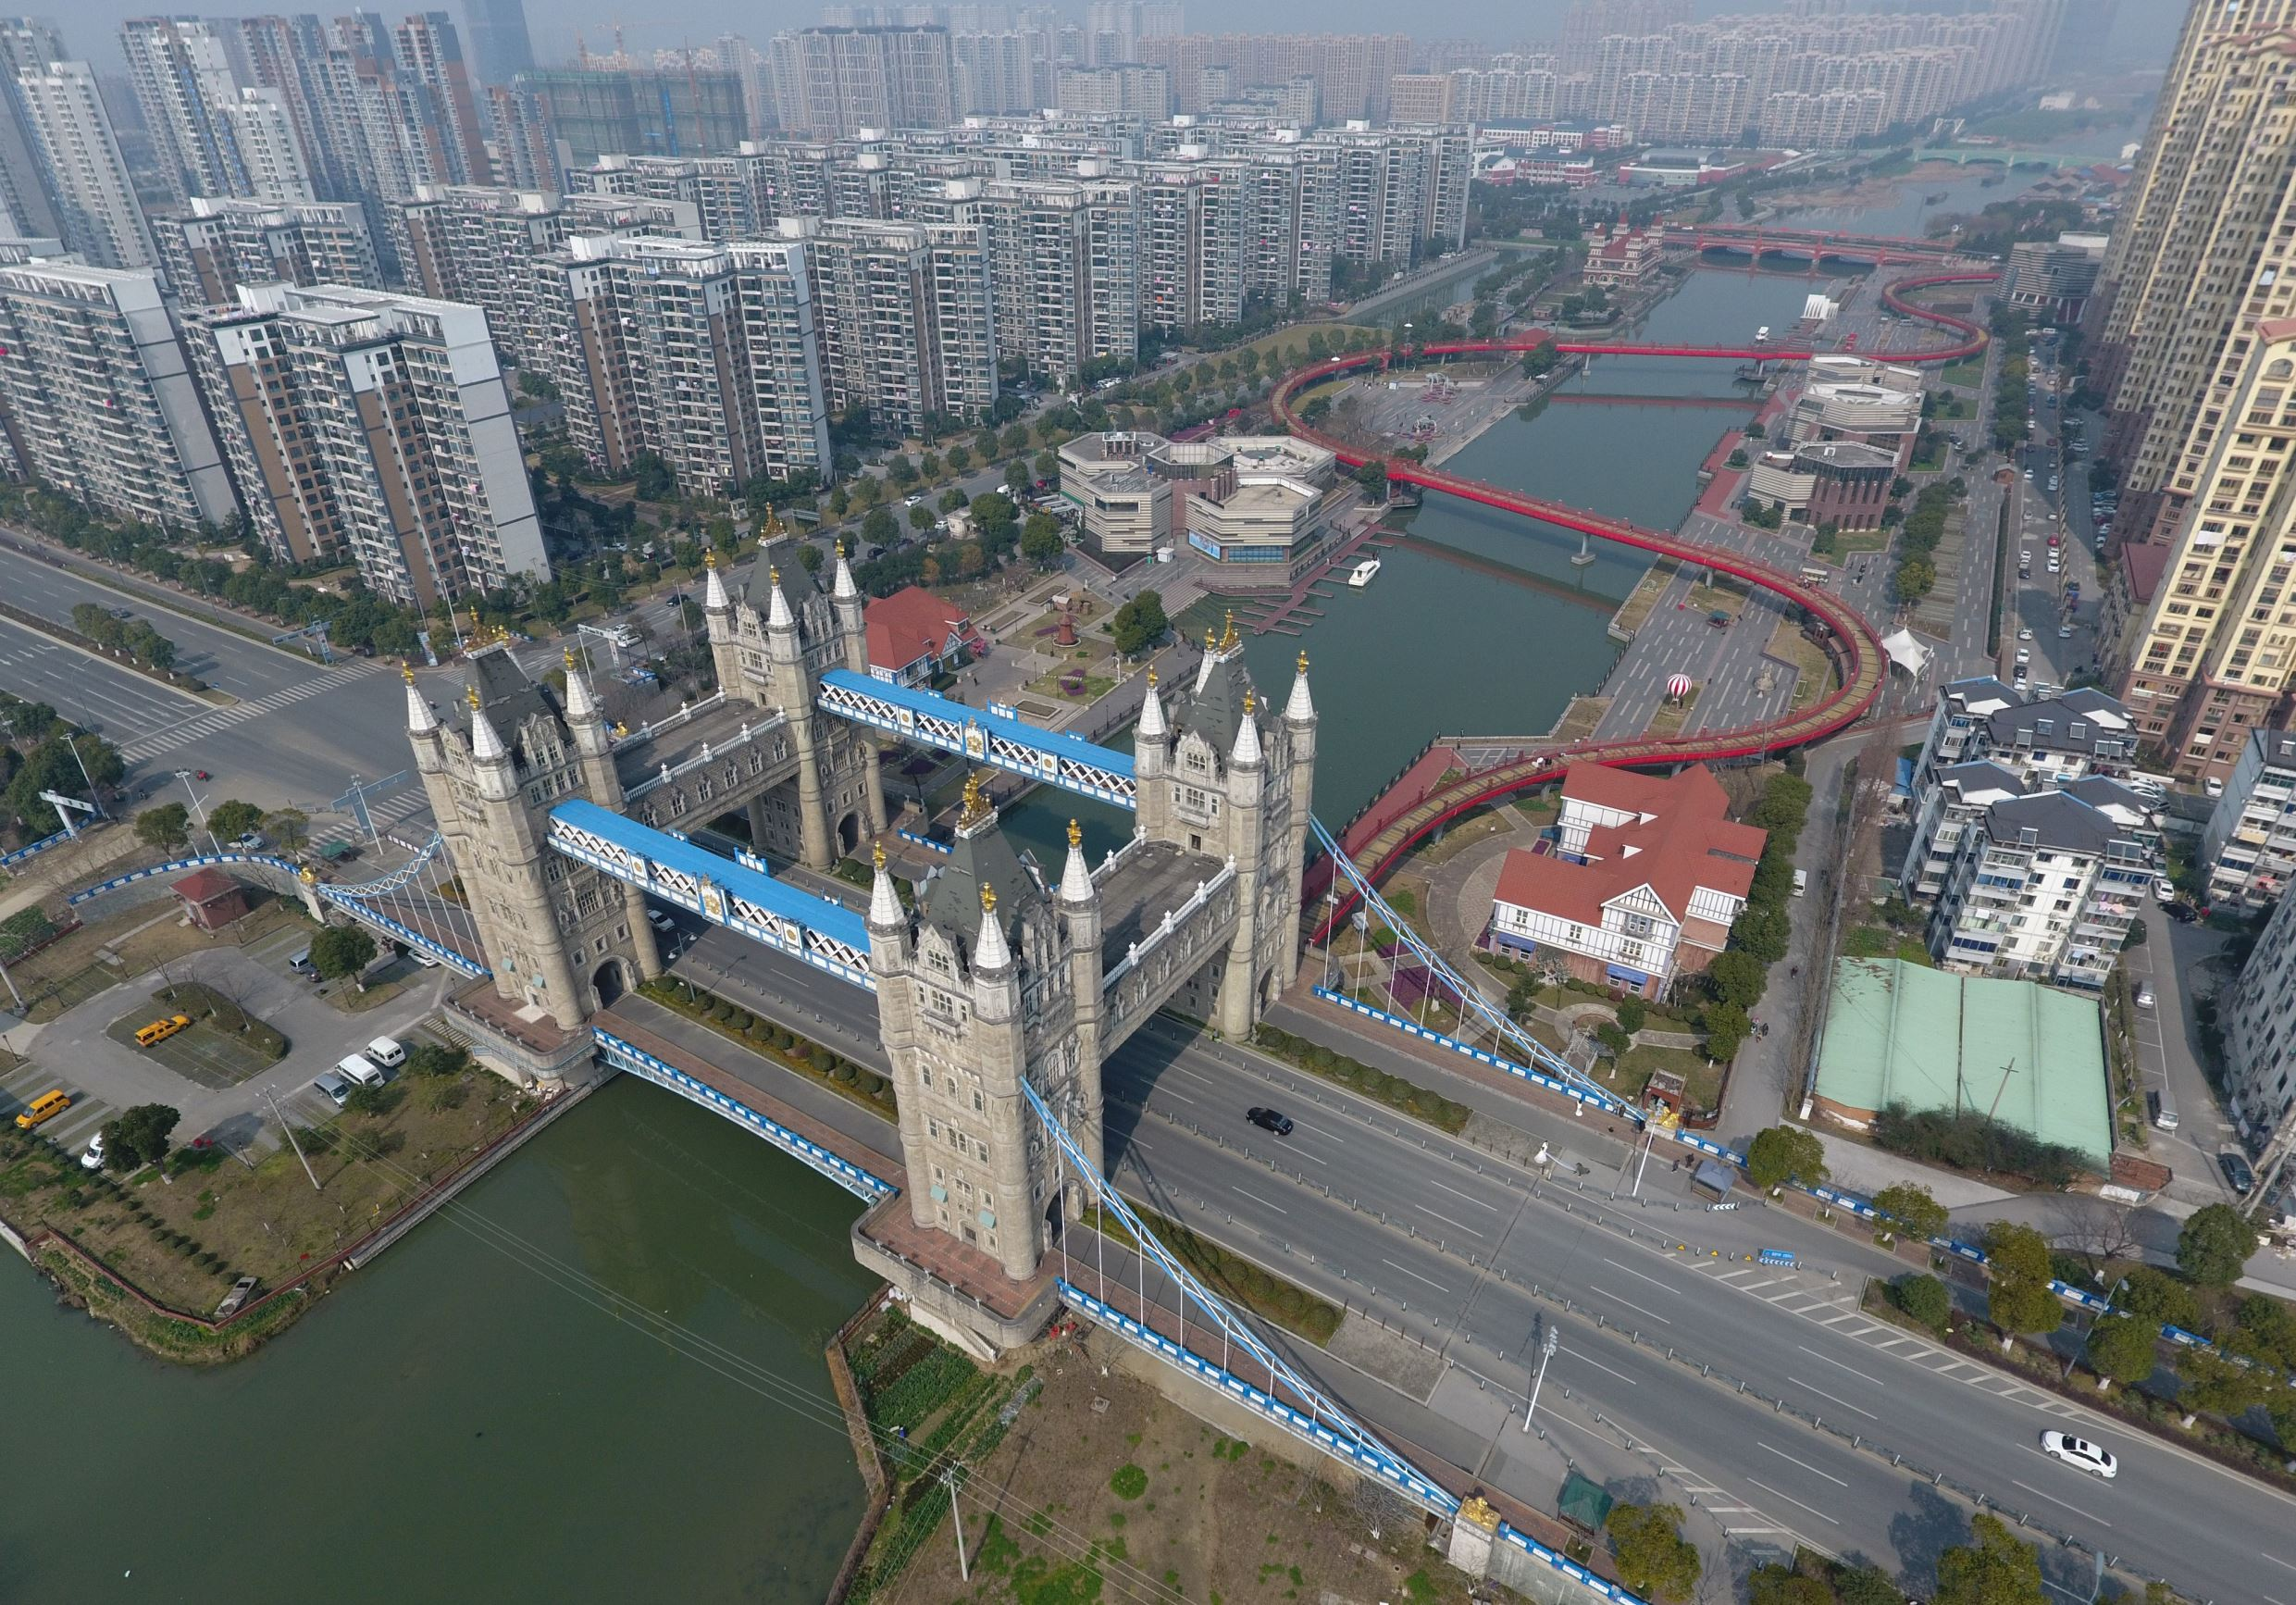 Slide 9 of 57: This photo taken on February 25, 2017 shows a bridge modeled on London's Tower Bridge, in Suzhou, in China's eastern Jiangsu province. The bridge features four 40 meter tall towers instead of two, but otherwise uses many design elements from the London o